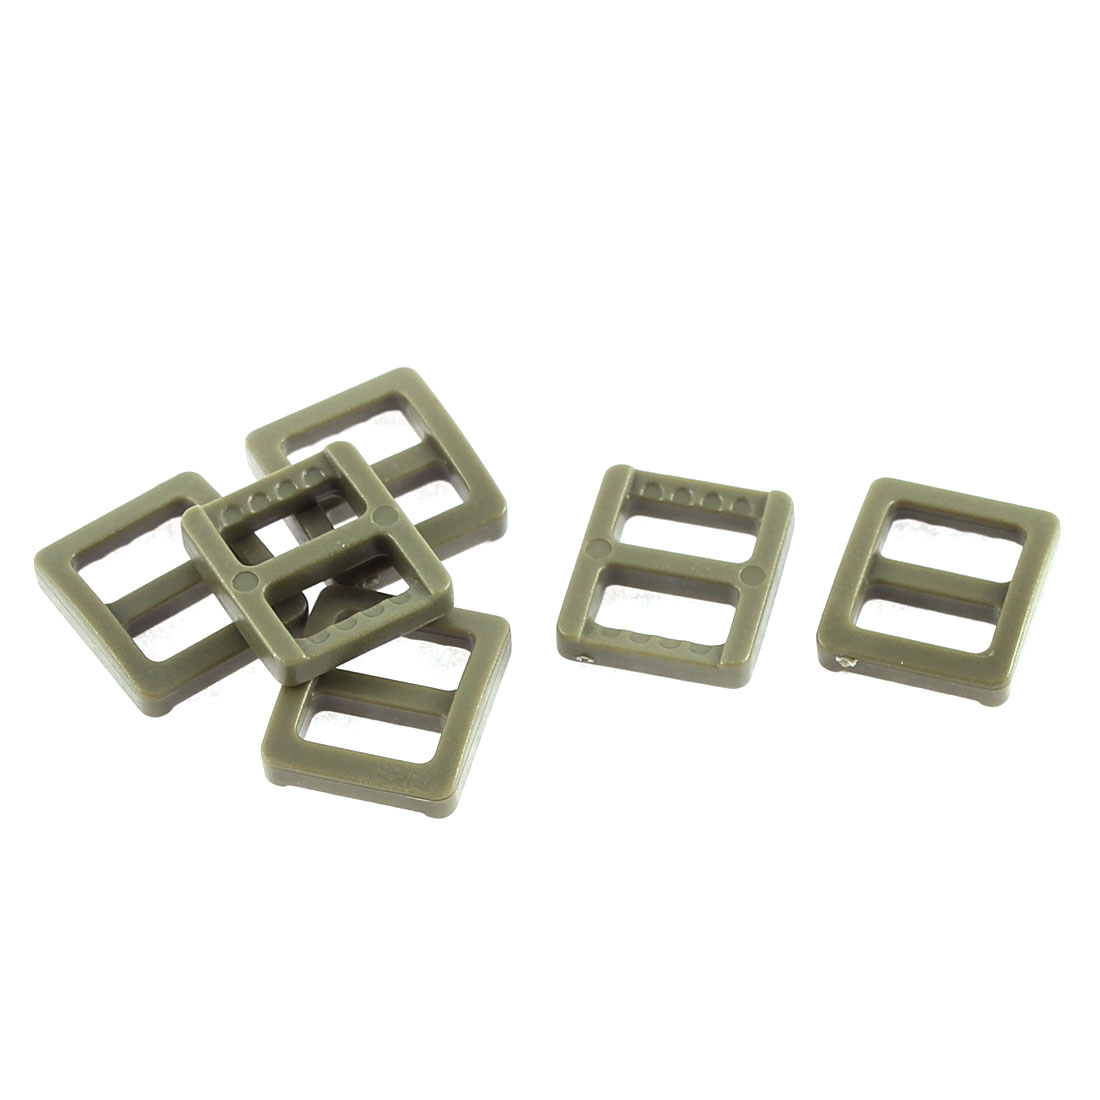 Backpack Handbag Hard Plastic Repairing Tool Tri Glide Buckle Army Green 6 Pcs